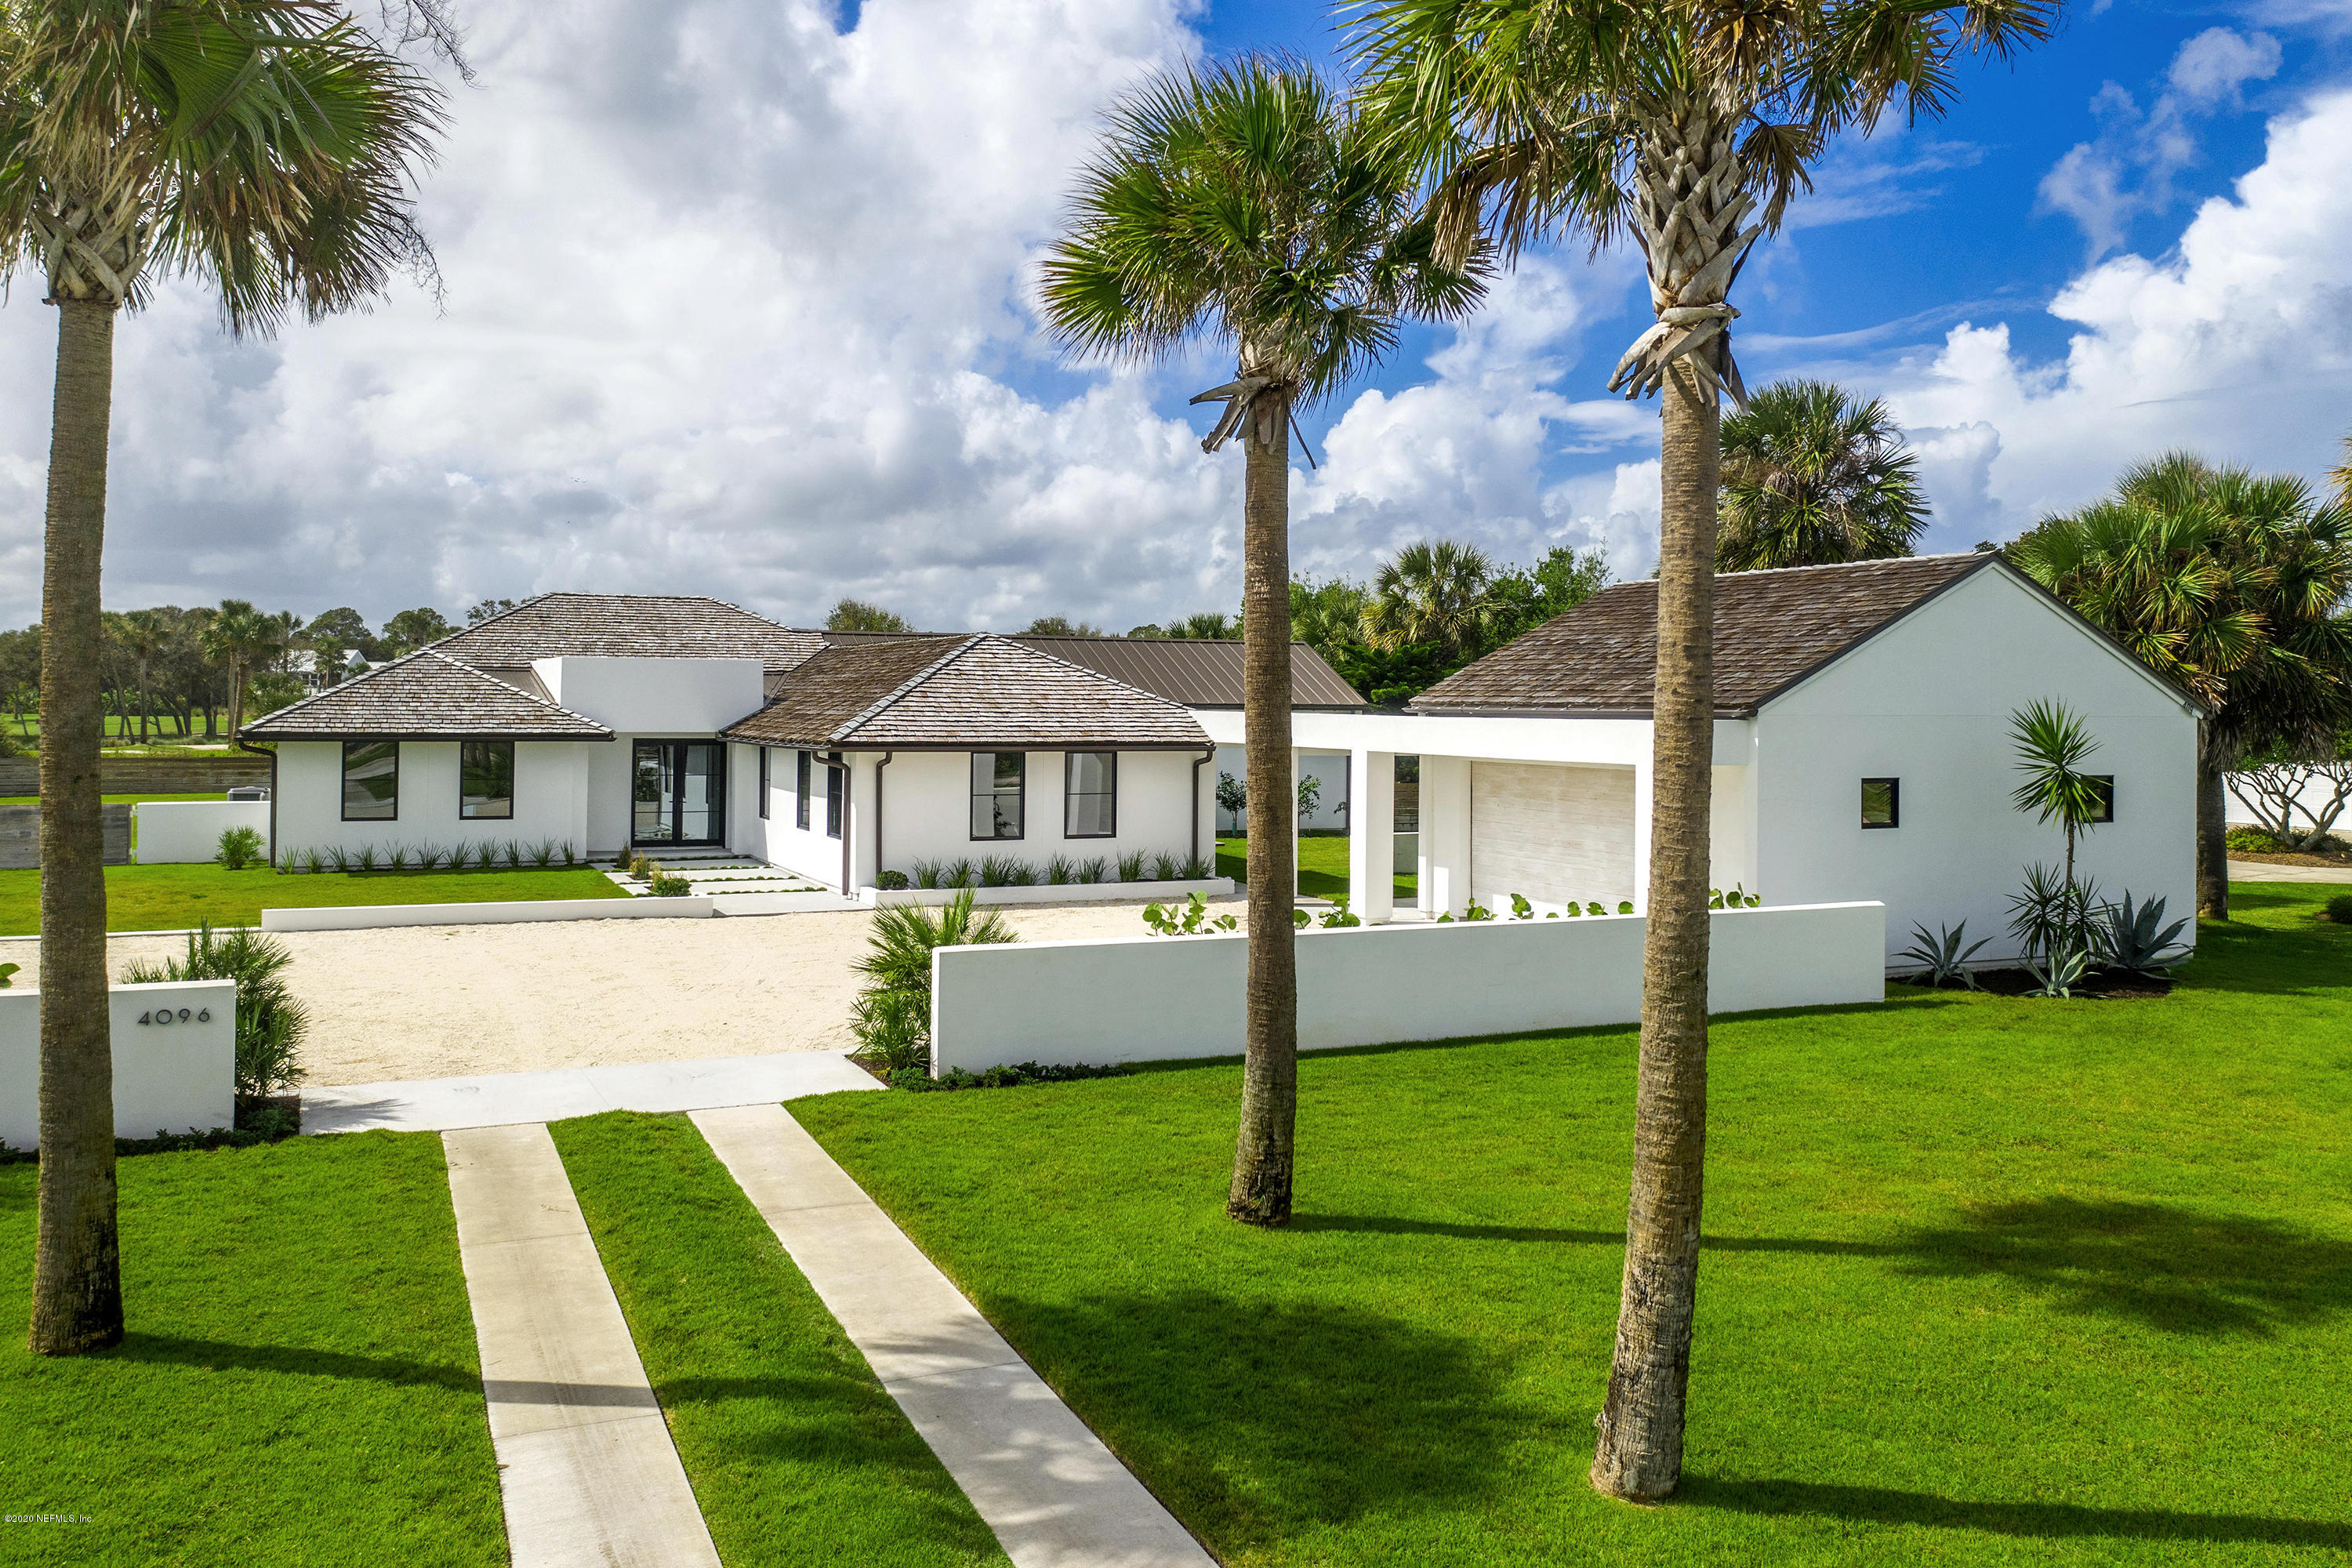 Property for sale at 4096 PONTE VEDRA BLVD, Jacksonville Beach,  Florida 32250